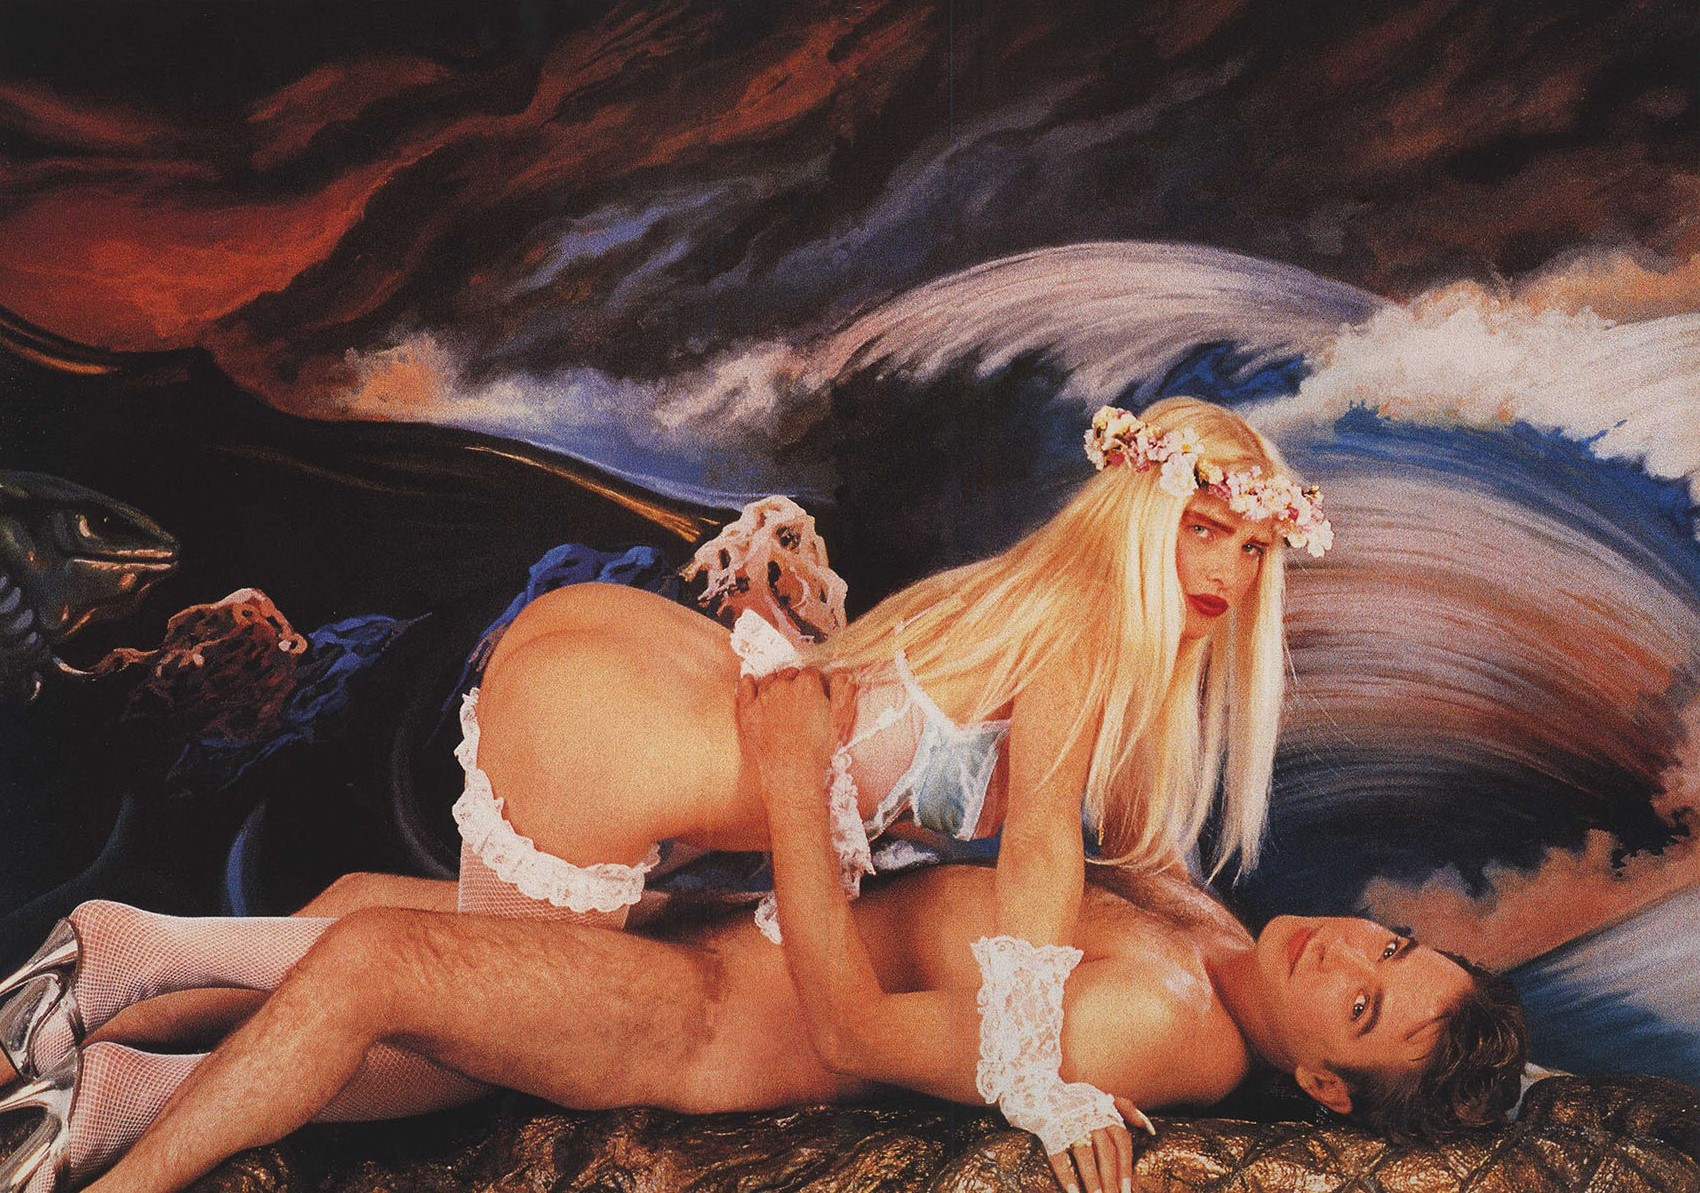 ILONA WITH ASS UP BY JEFF KOONS | 1990